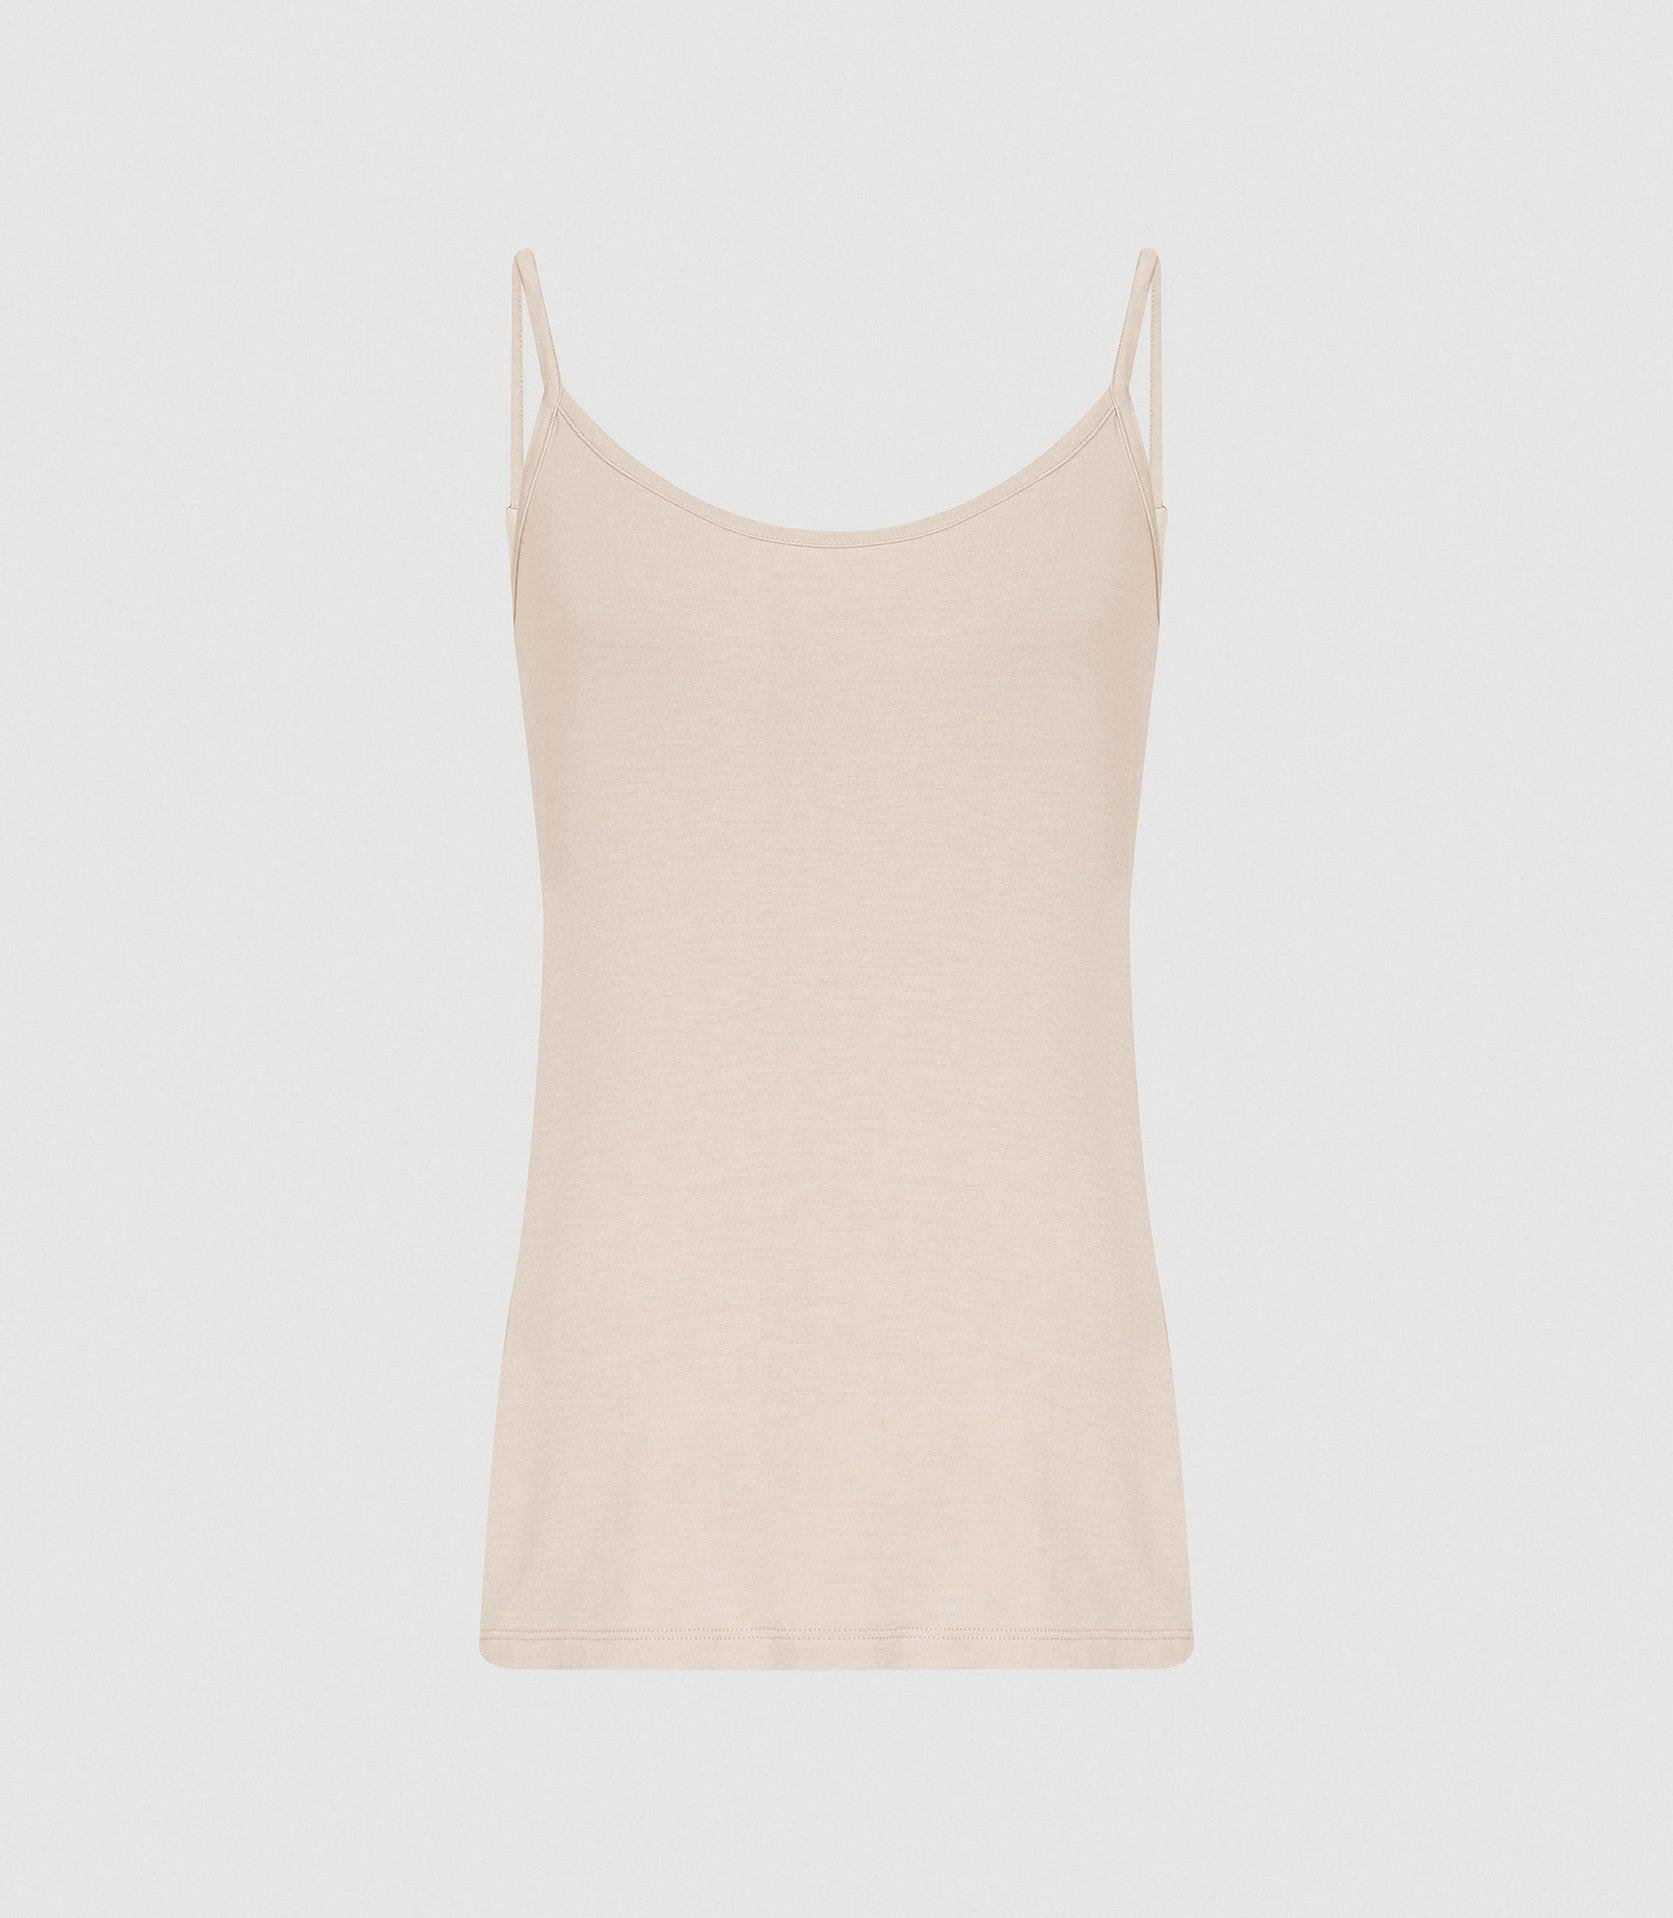 MILLY - JERSEY CAMI TOP 4